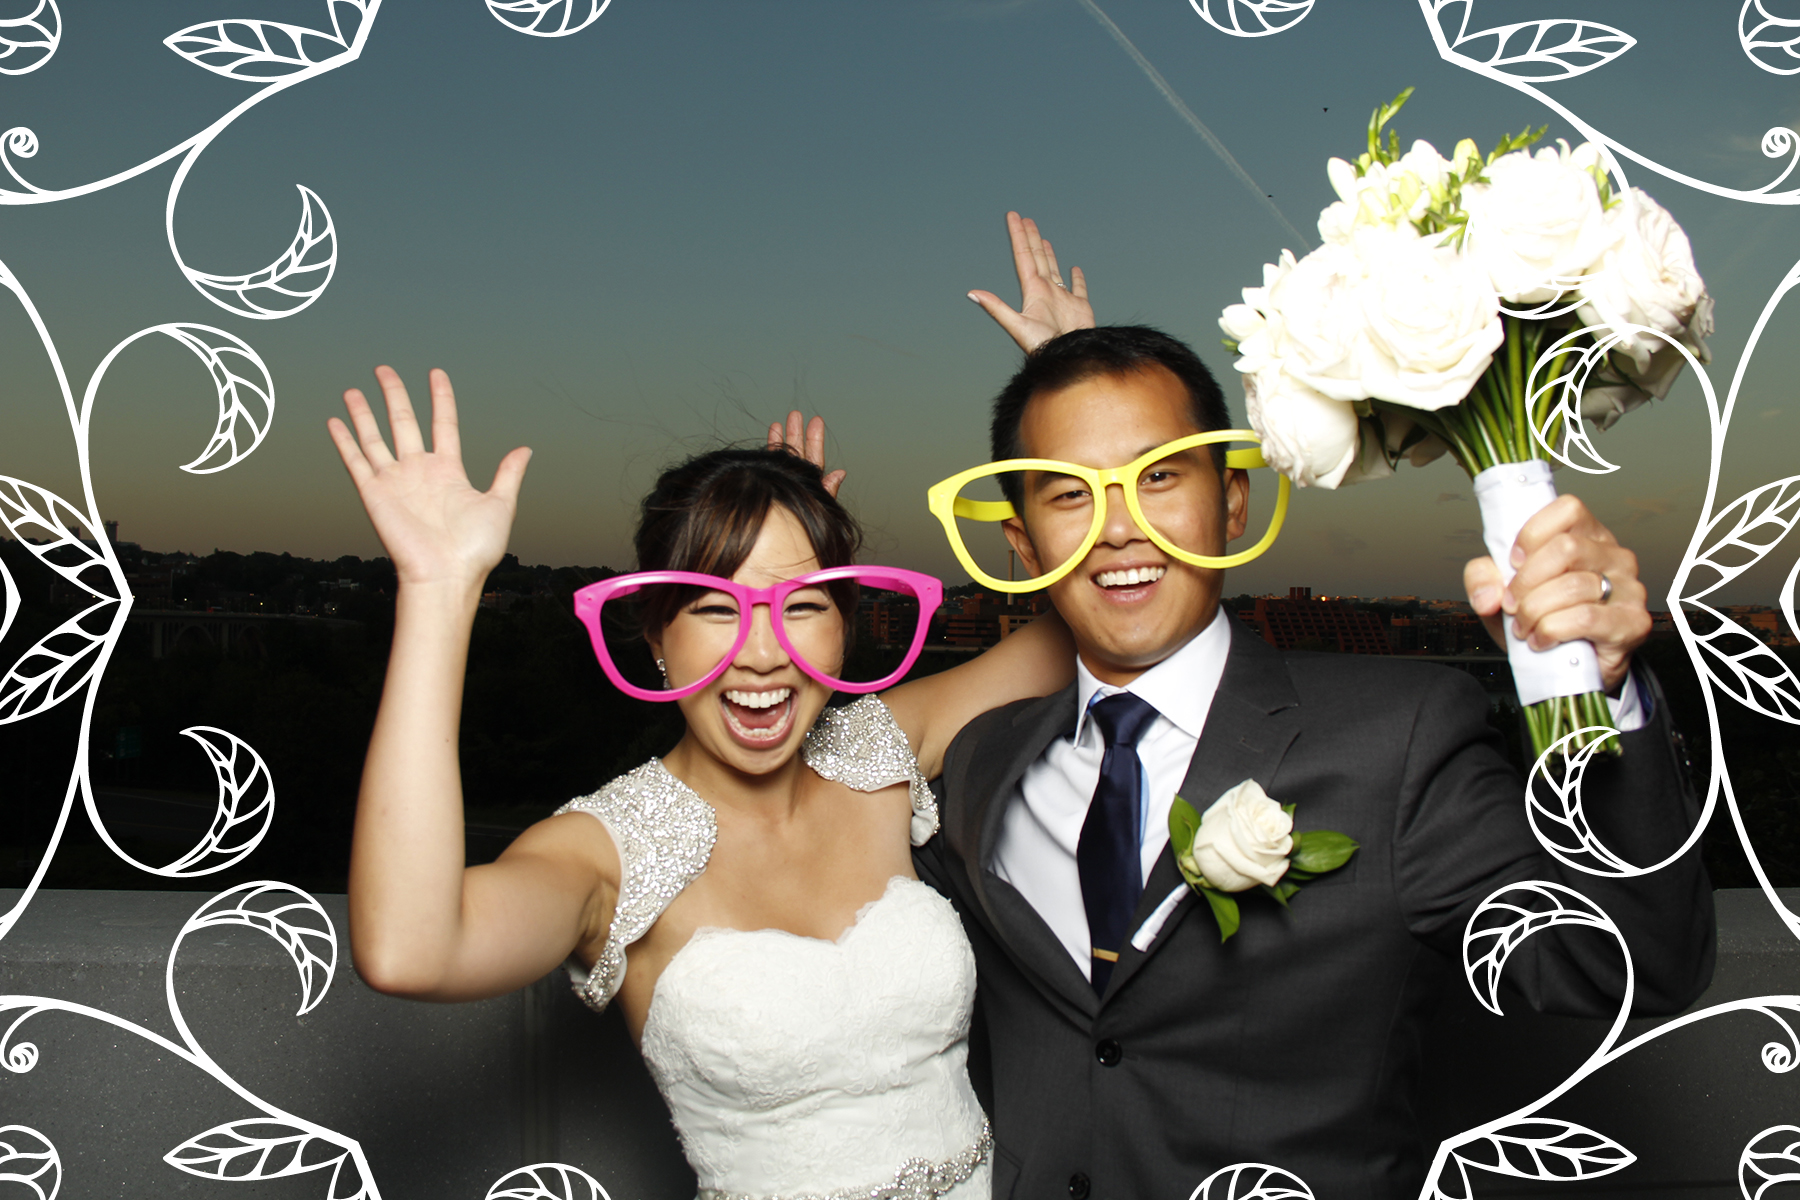 Masquerade Photo Booth.jpg